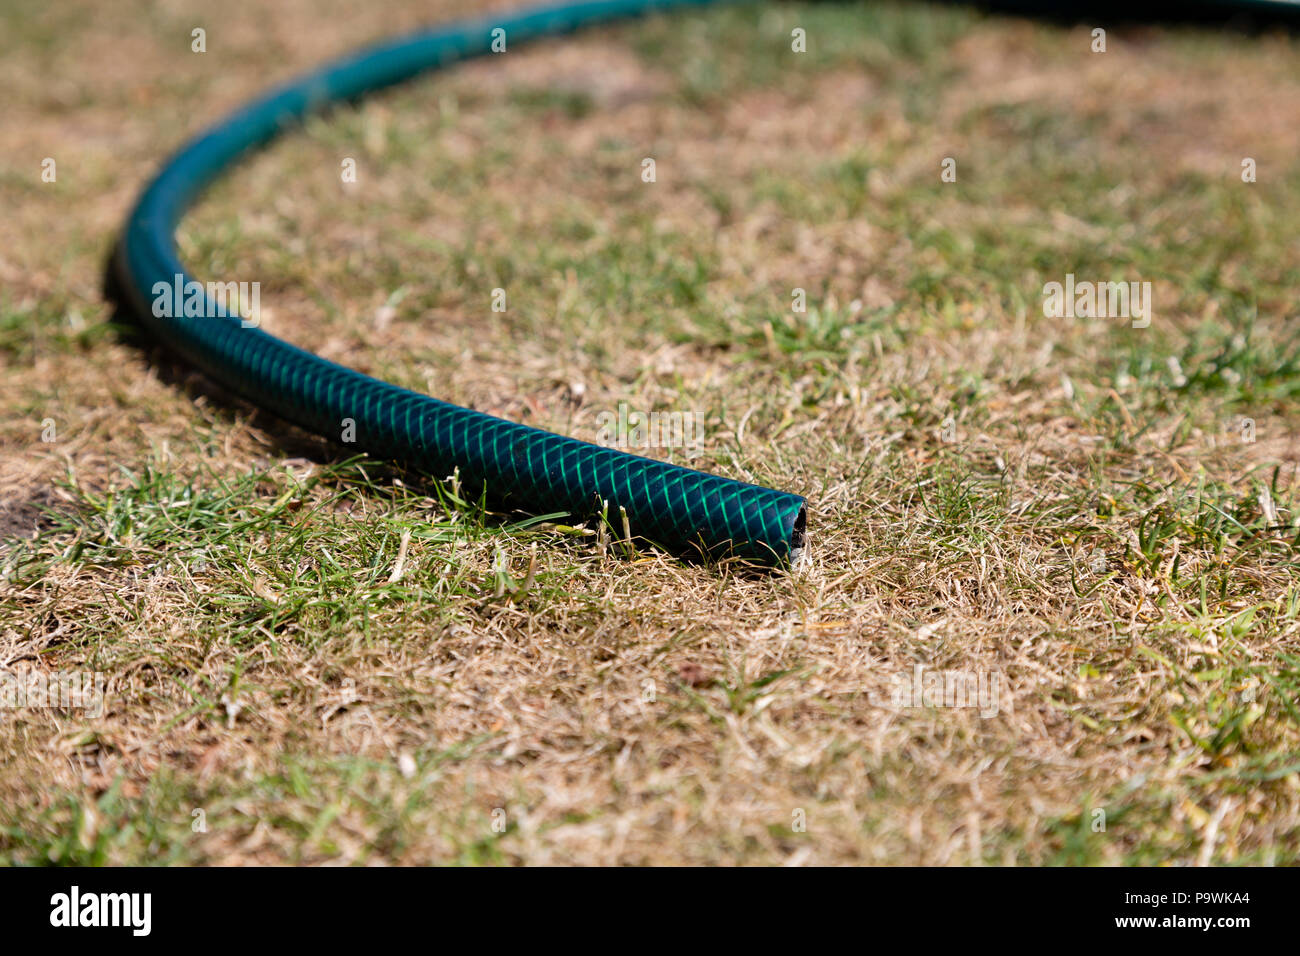 Hose lying on parched grass - Stock Image